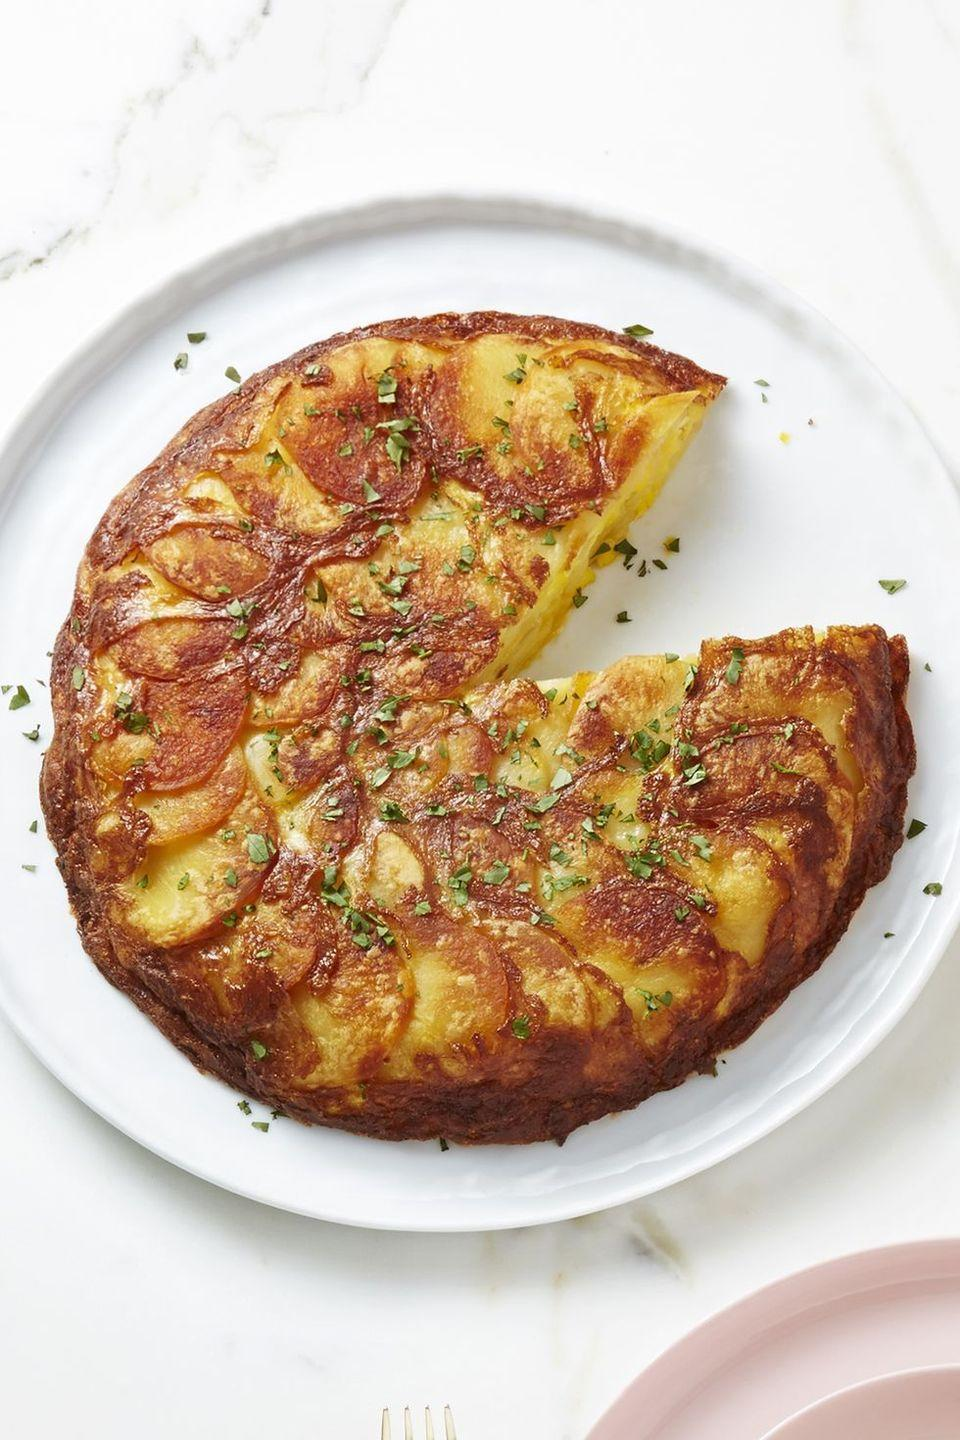 """<p>In my humble opinion, every omelette should contain crispy, oven baked potatoes. </p><p><a href=""""https://www.goodhousekeeping.com/food-recipes/a43177/spanish-potato-omelet-recipe/"""" rel=""""nofollow noopener"""" target=""""_blank"""" data-ylk=""""slk:Get the recipe for Spanish Potato Omelet »"""" class=""""link rapid-noclick-resp""""><em>Get the recipe for Spanish Potato Omelet »</em></a></p>"""